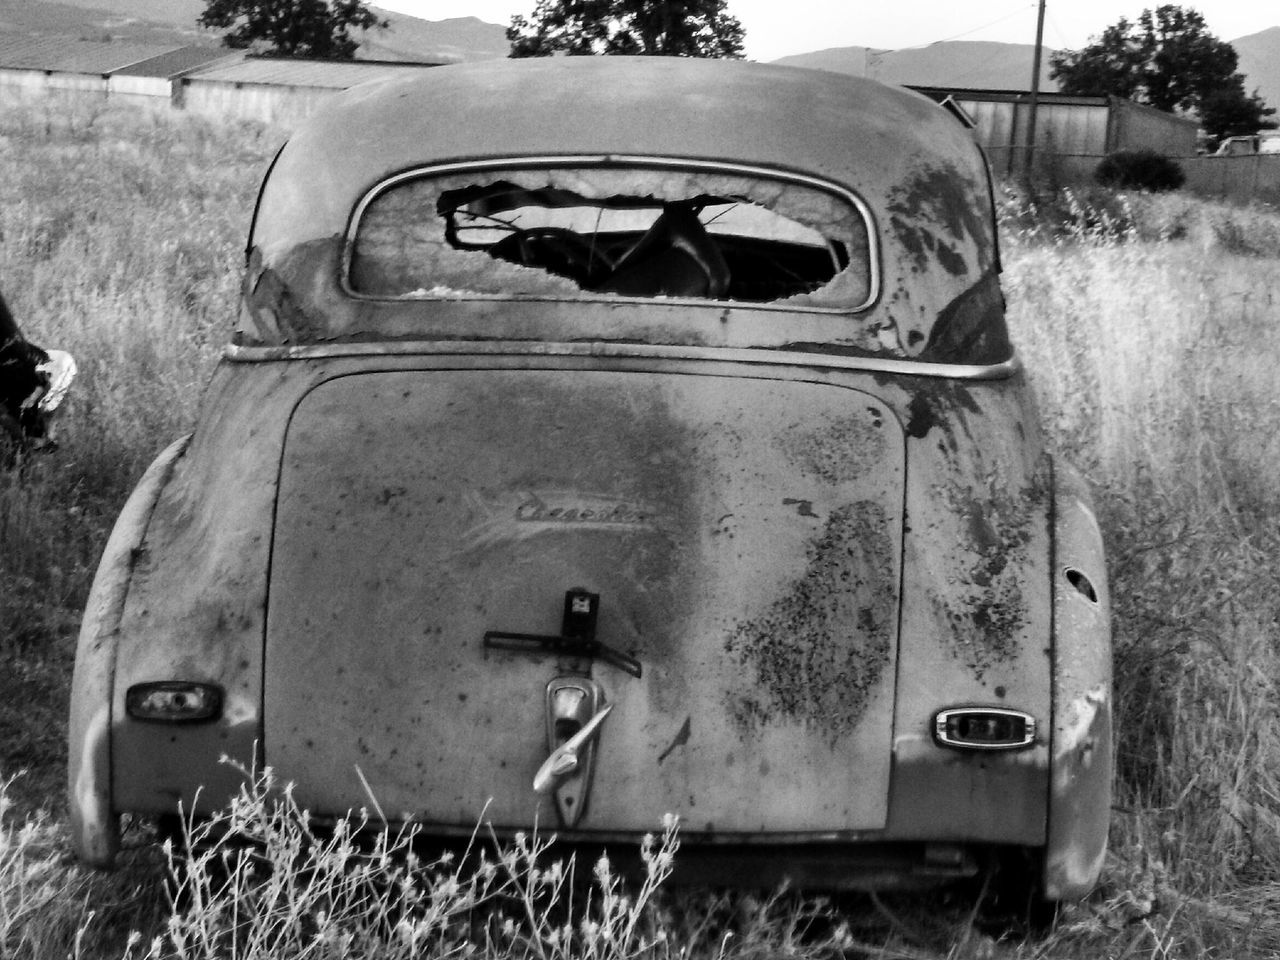 Rusty Autos Old But Awesome Classic Cars Abandoned Abandoned Car Taking Photos Outdoors My Point Of View Outdoor Photography Black And White Black And White Collection